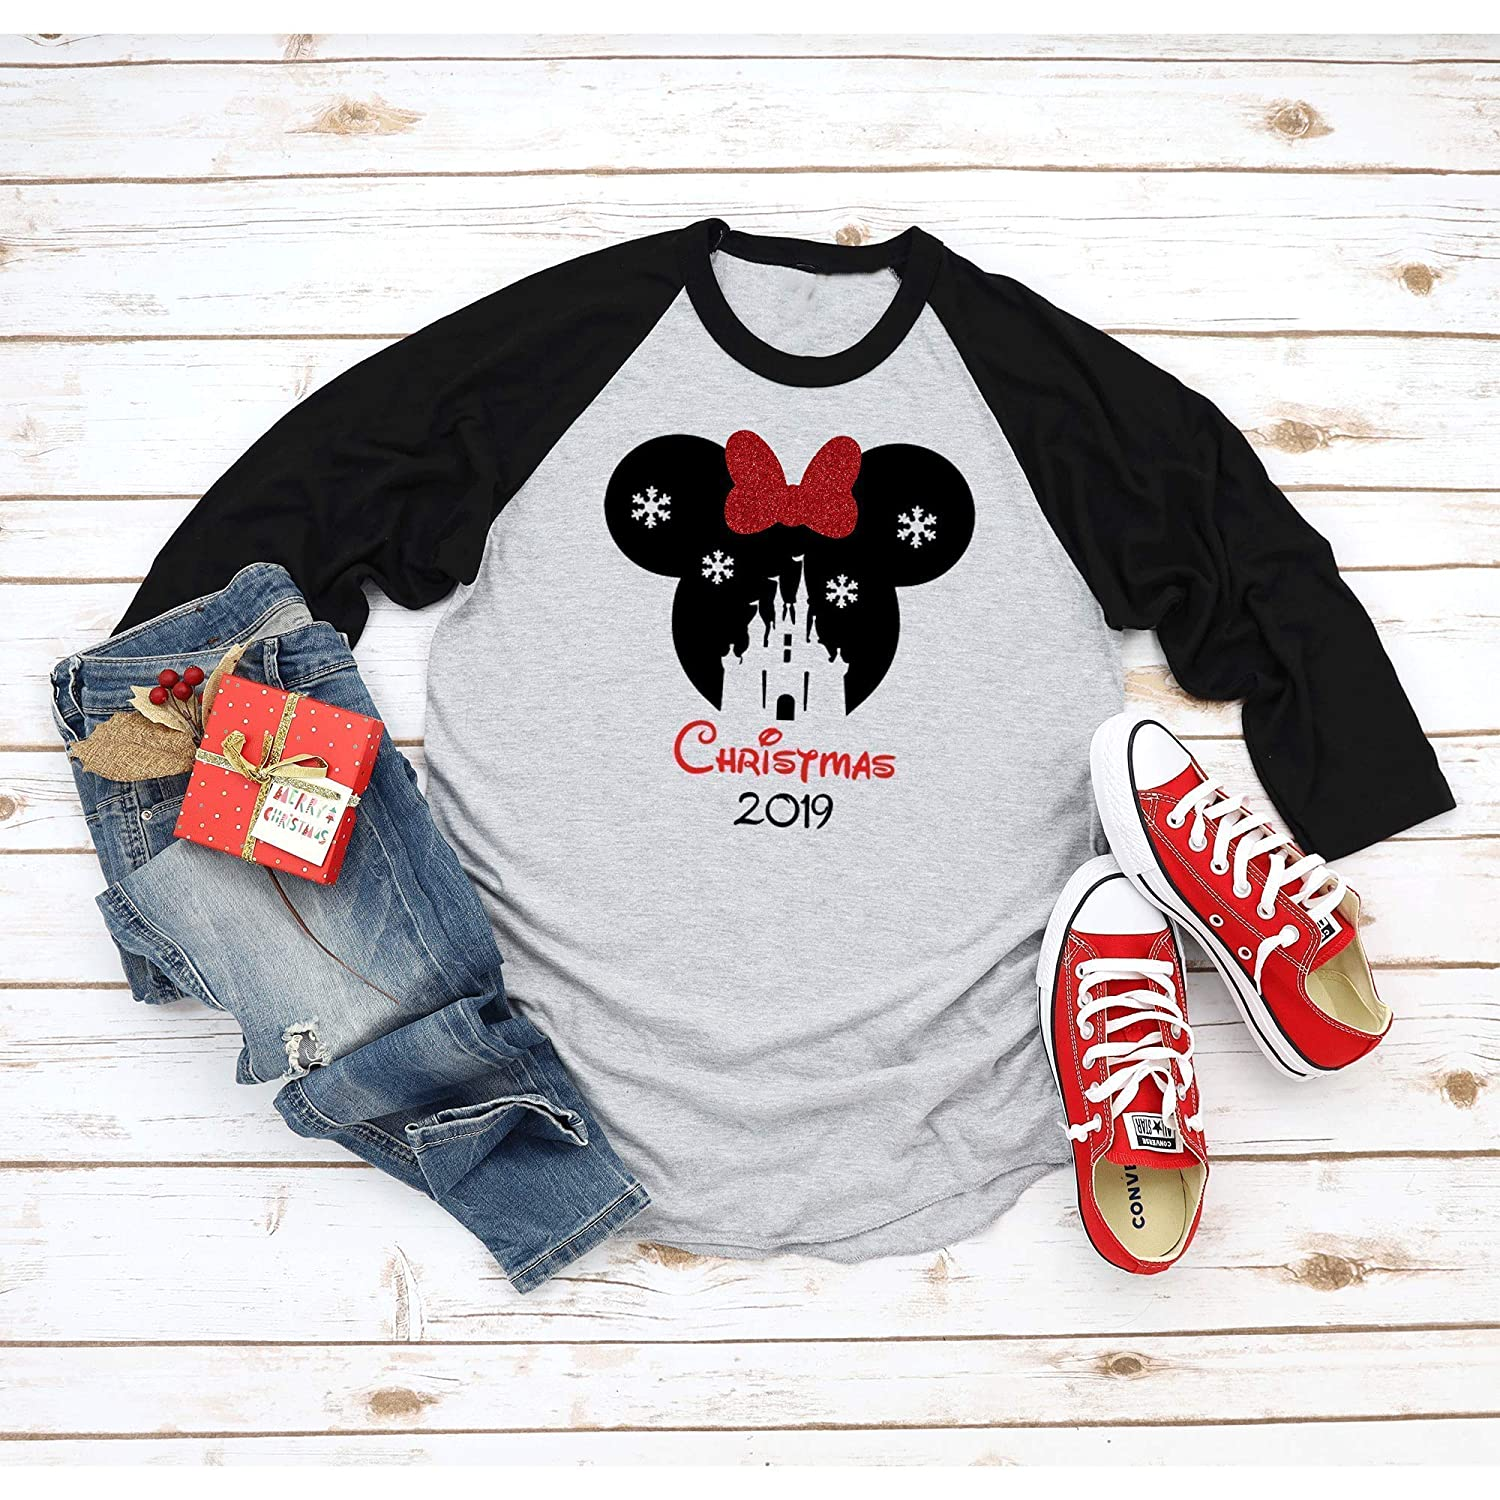 Christmas Family Vacation Packages 2020 Amazon.com: 2020 Christmas Family Vacation Baseball Tee, Vacation